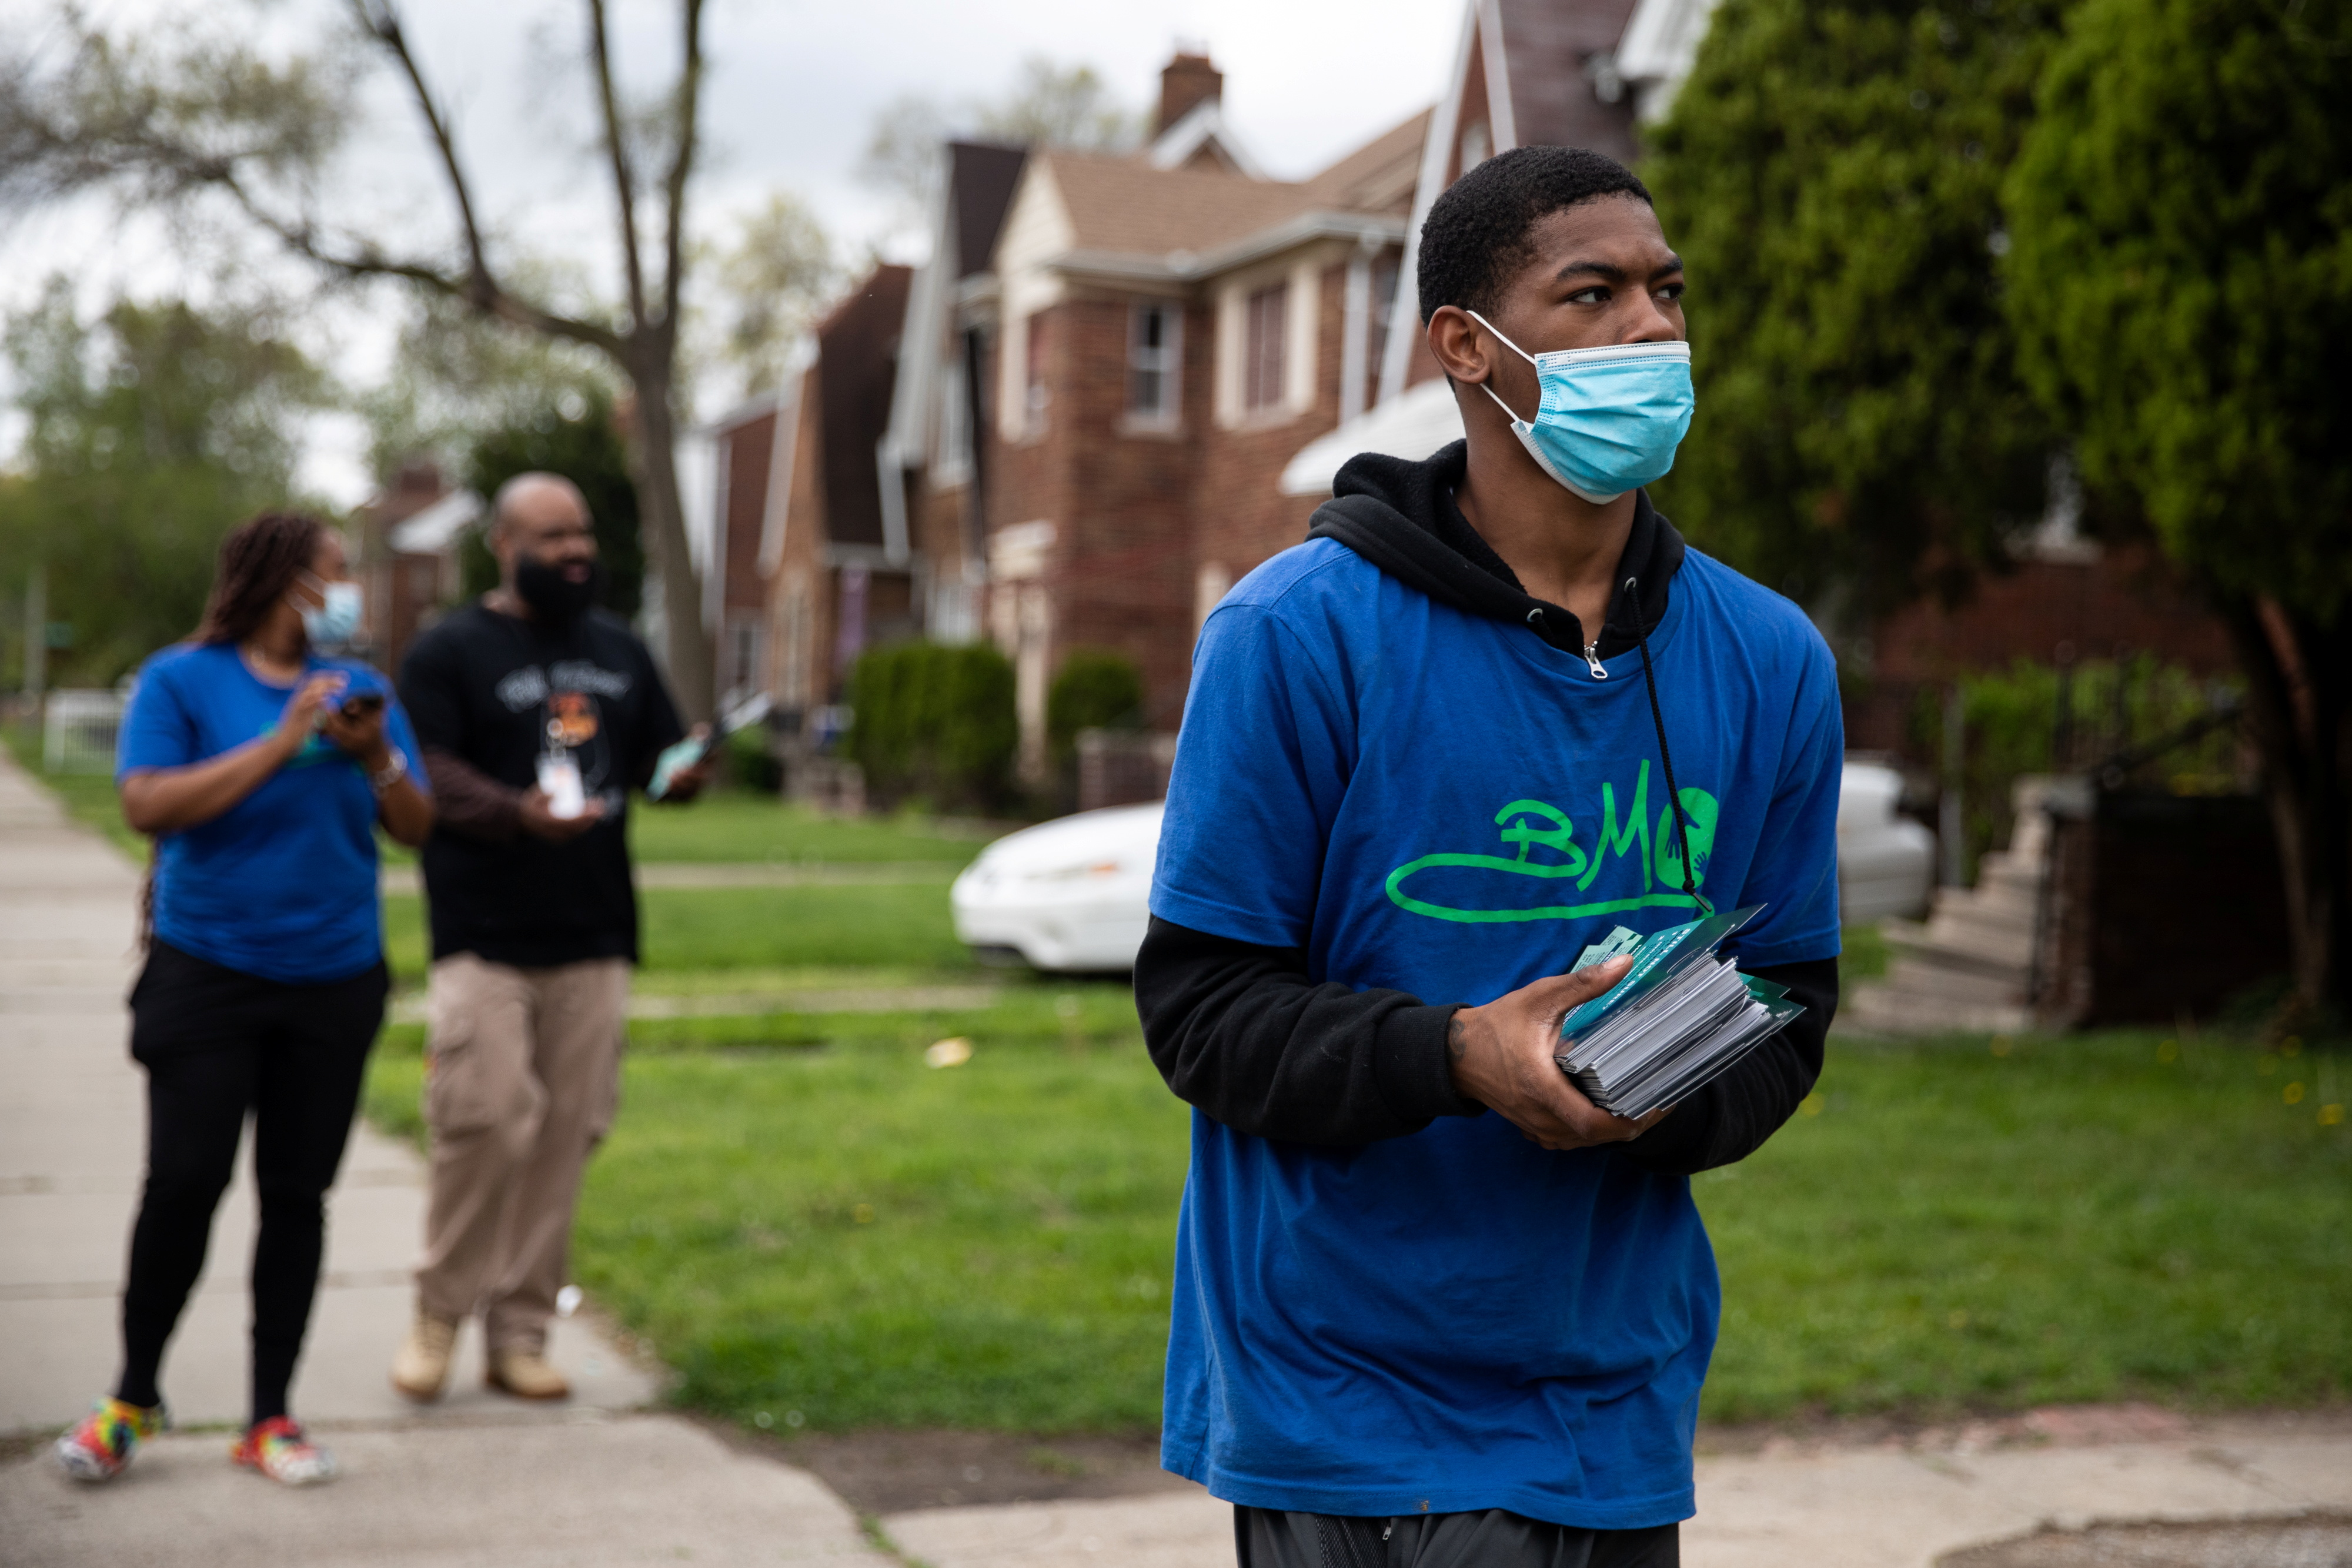 Sirgregory Allen with Better Men Outreach participates in a door-knock campaign to help answer questions related to hesitancy around the coronavirus disease (COVID-19) vaccine in Detroit, Michigan, U.S., May 4, 2021. REUTERS/Emily Elconin